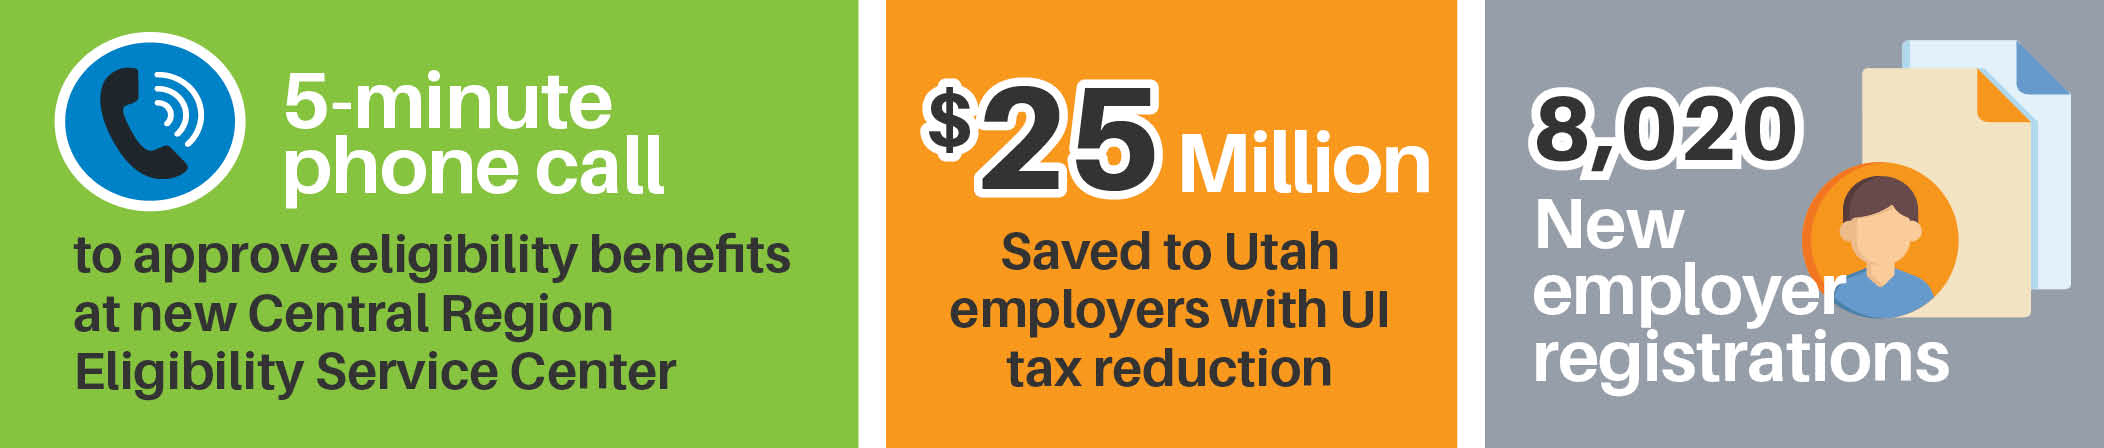 5 minute phone call to approve eligibility benefits at new central region eligibility service center. $25 million saved to Utah employers with UI tax reduction. 8,020 new employer registrations.